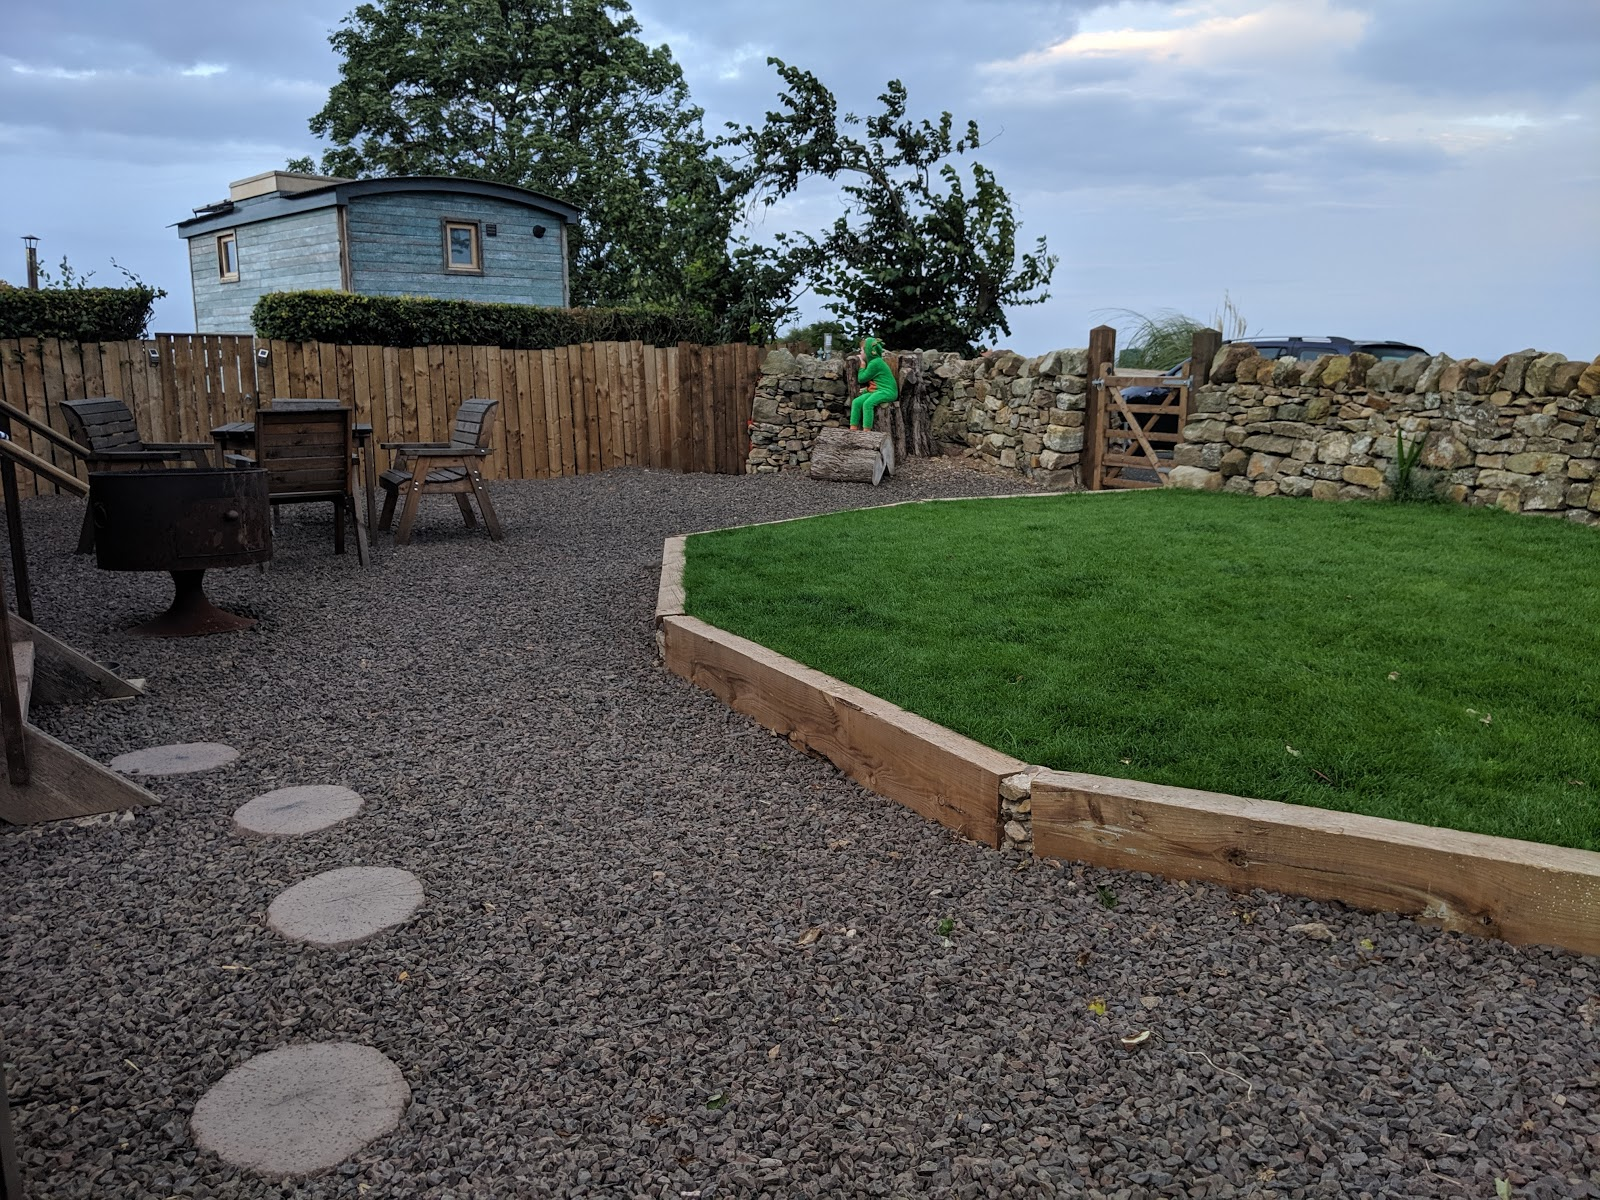 Shepherd's Retreats Beadnell Review - Dog-friendly Glamping in Northumberland - enclosed garden